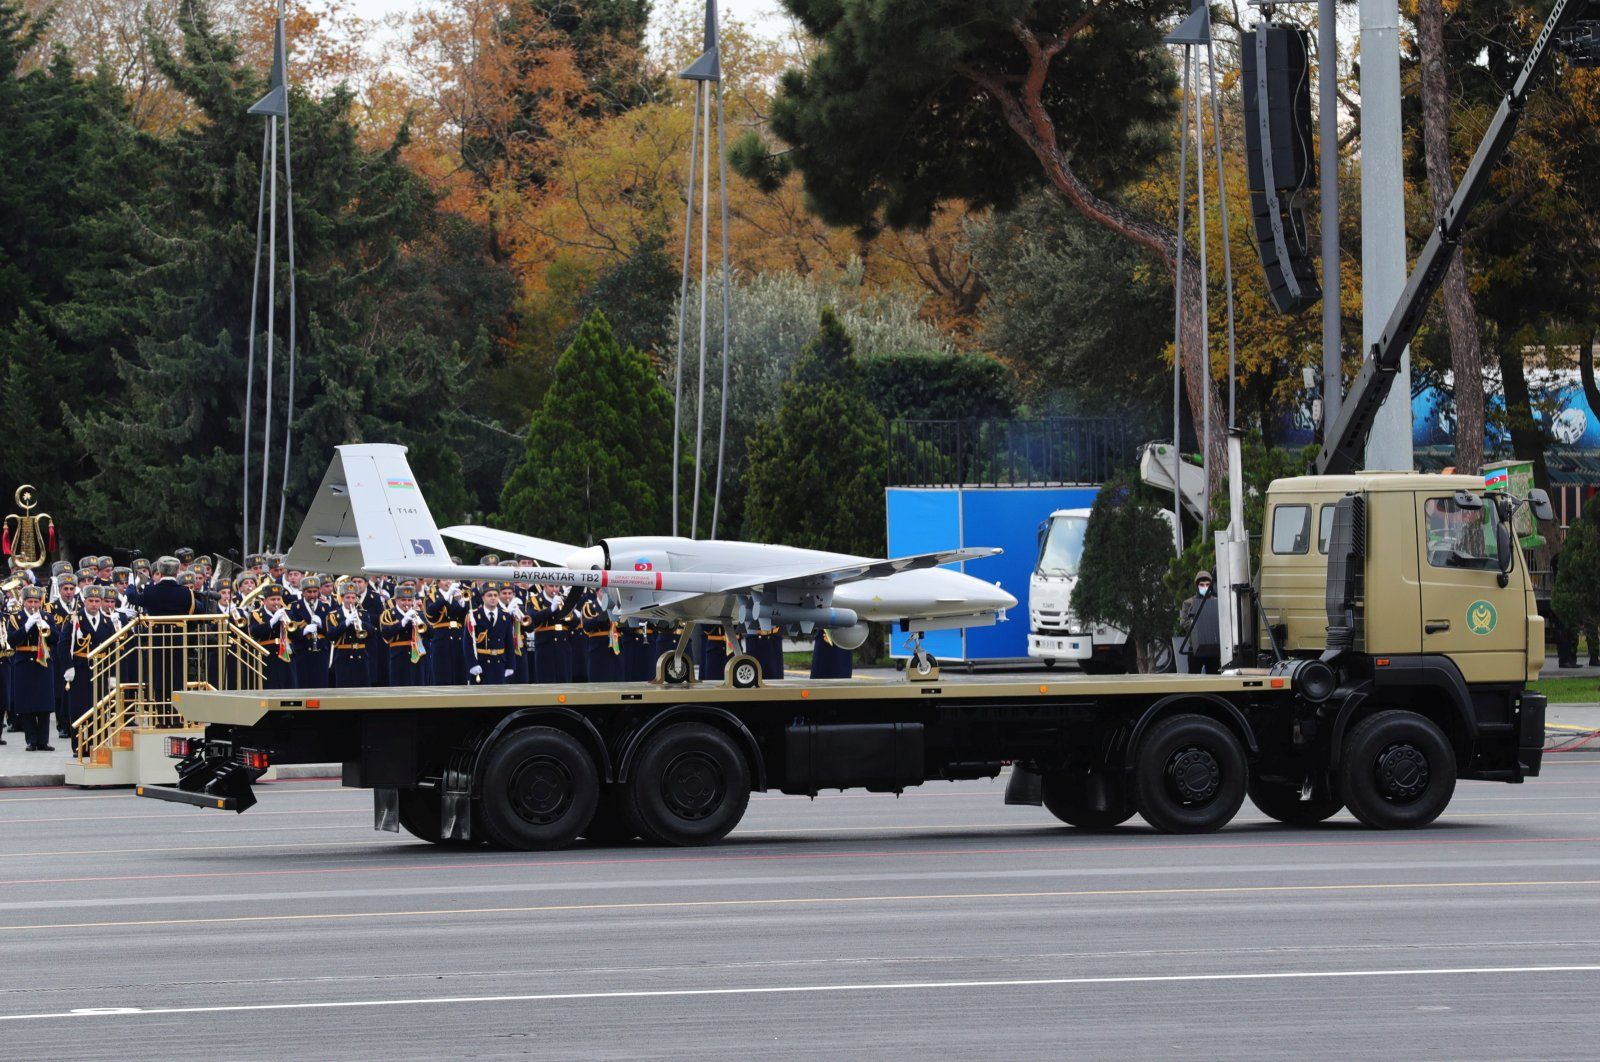 An Azerbaijan army Bayraktar TB2, a medium-altitude, long-endurance unmanned combat aerial vehicle, is displayed during a military parade to mark the victory in the Nagorno-Karabakh conflict, in Baku, Azerbaijan, Dec. 10, 2020. (Turkish Presidential Press Office / Handout via Reuters)